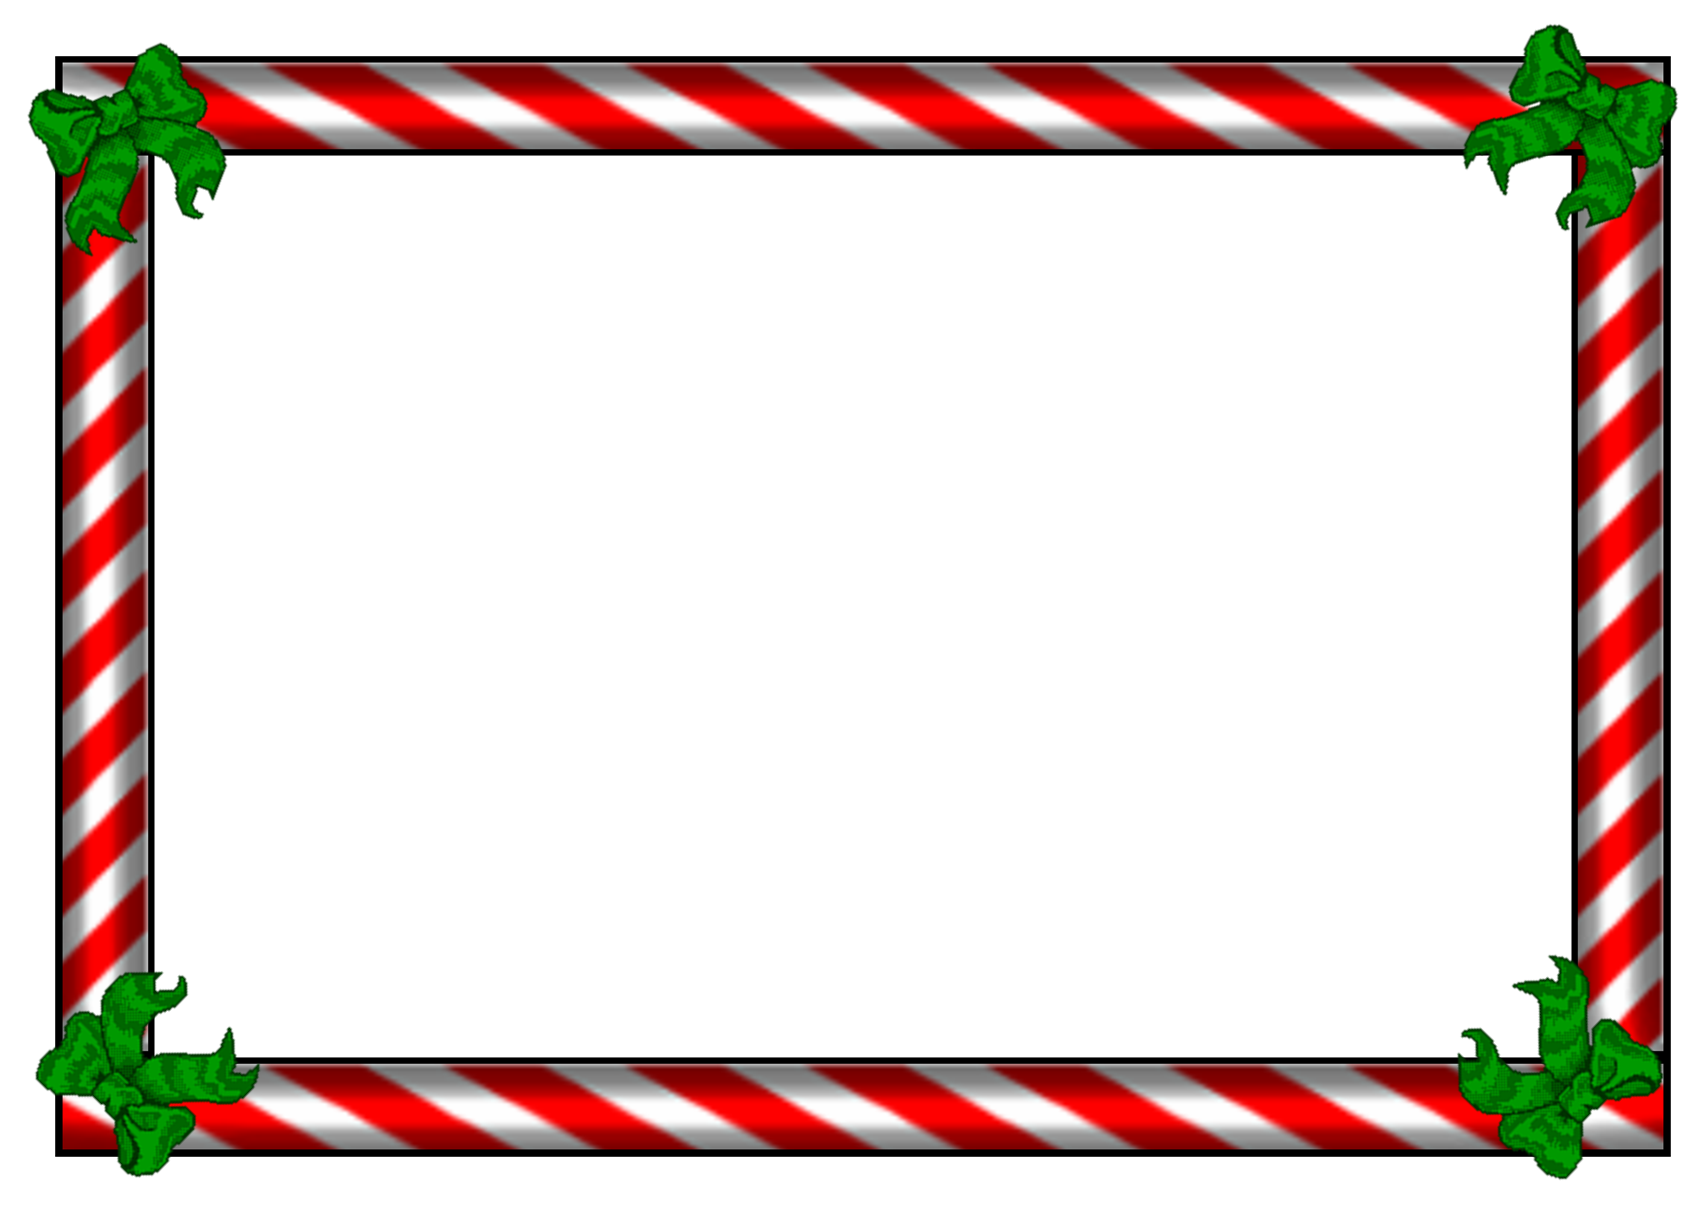 Candy cane border png. Best photos of christmas